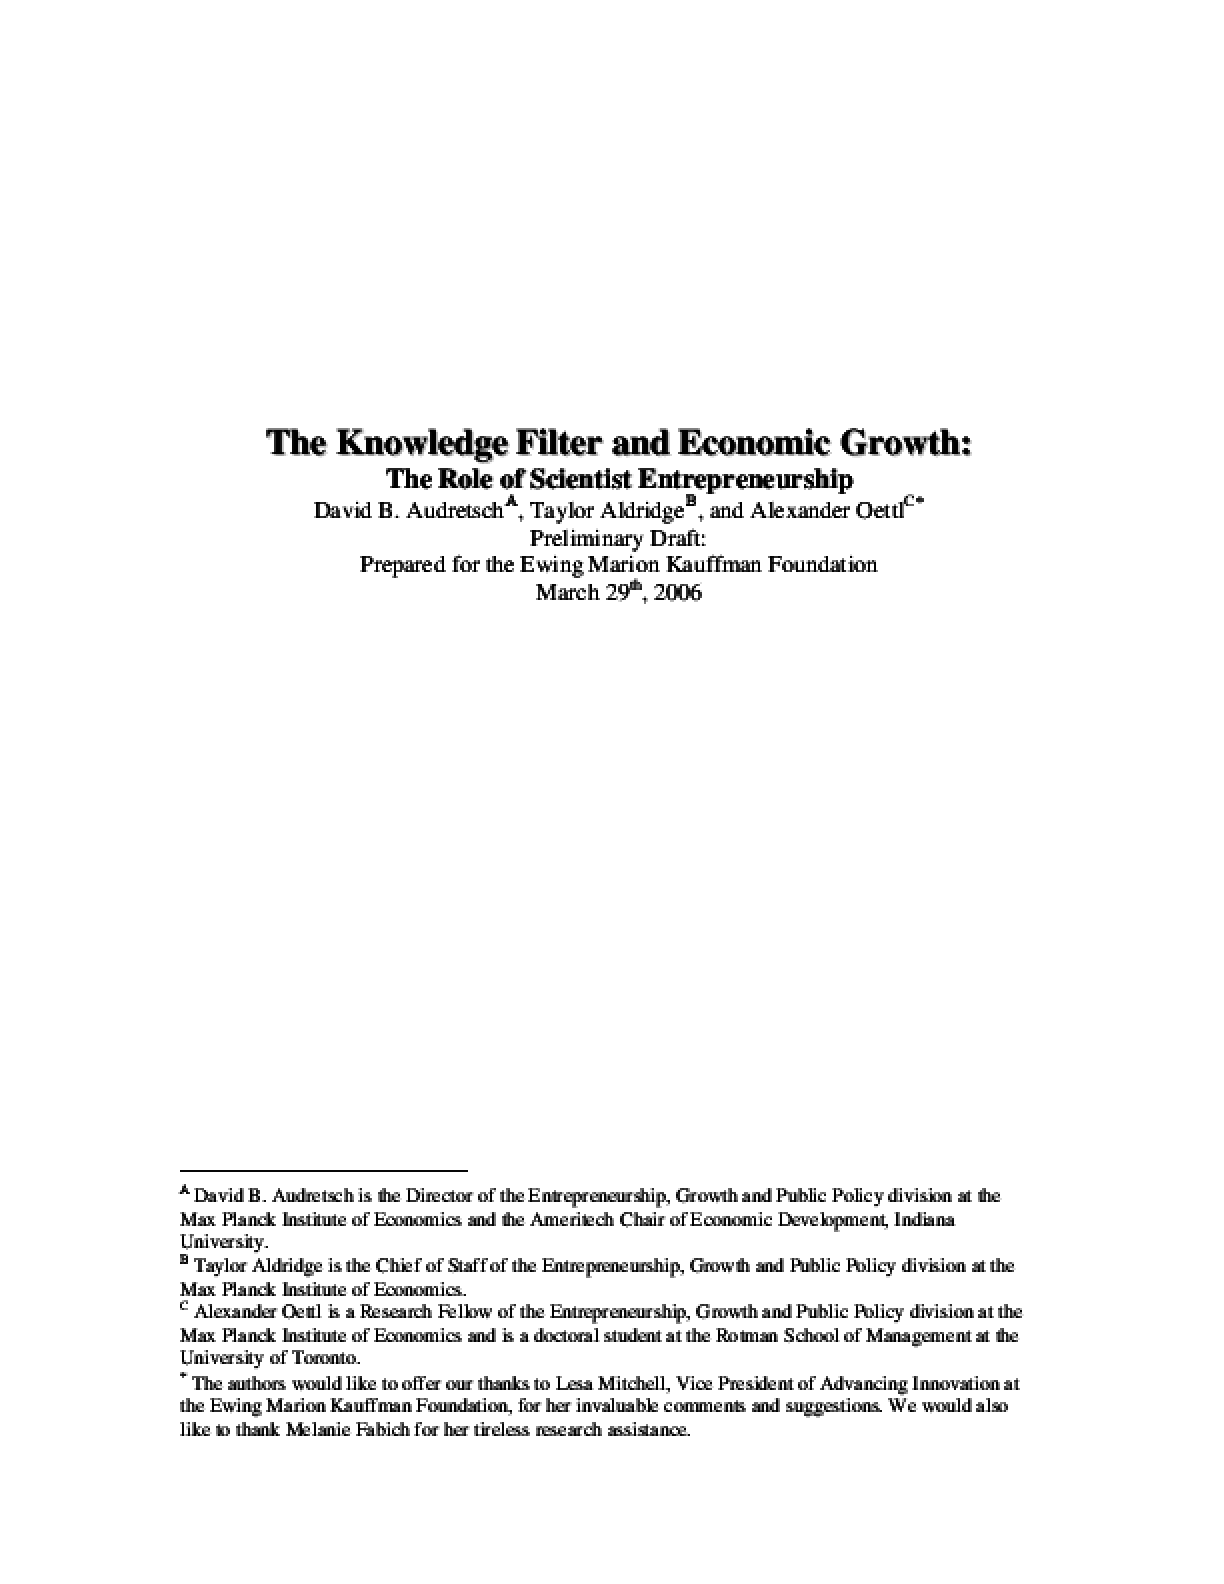 The Knowledge Filter and Economic Growth: The Role of Scientist Entrepreneurship